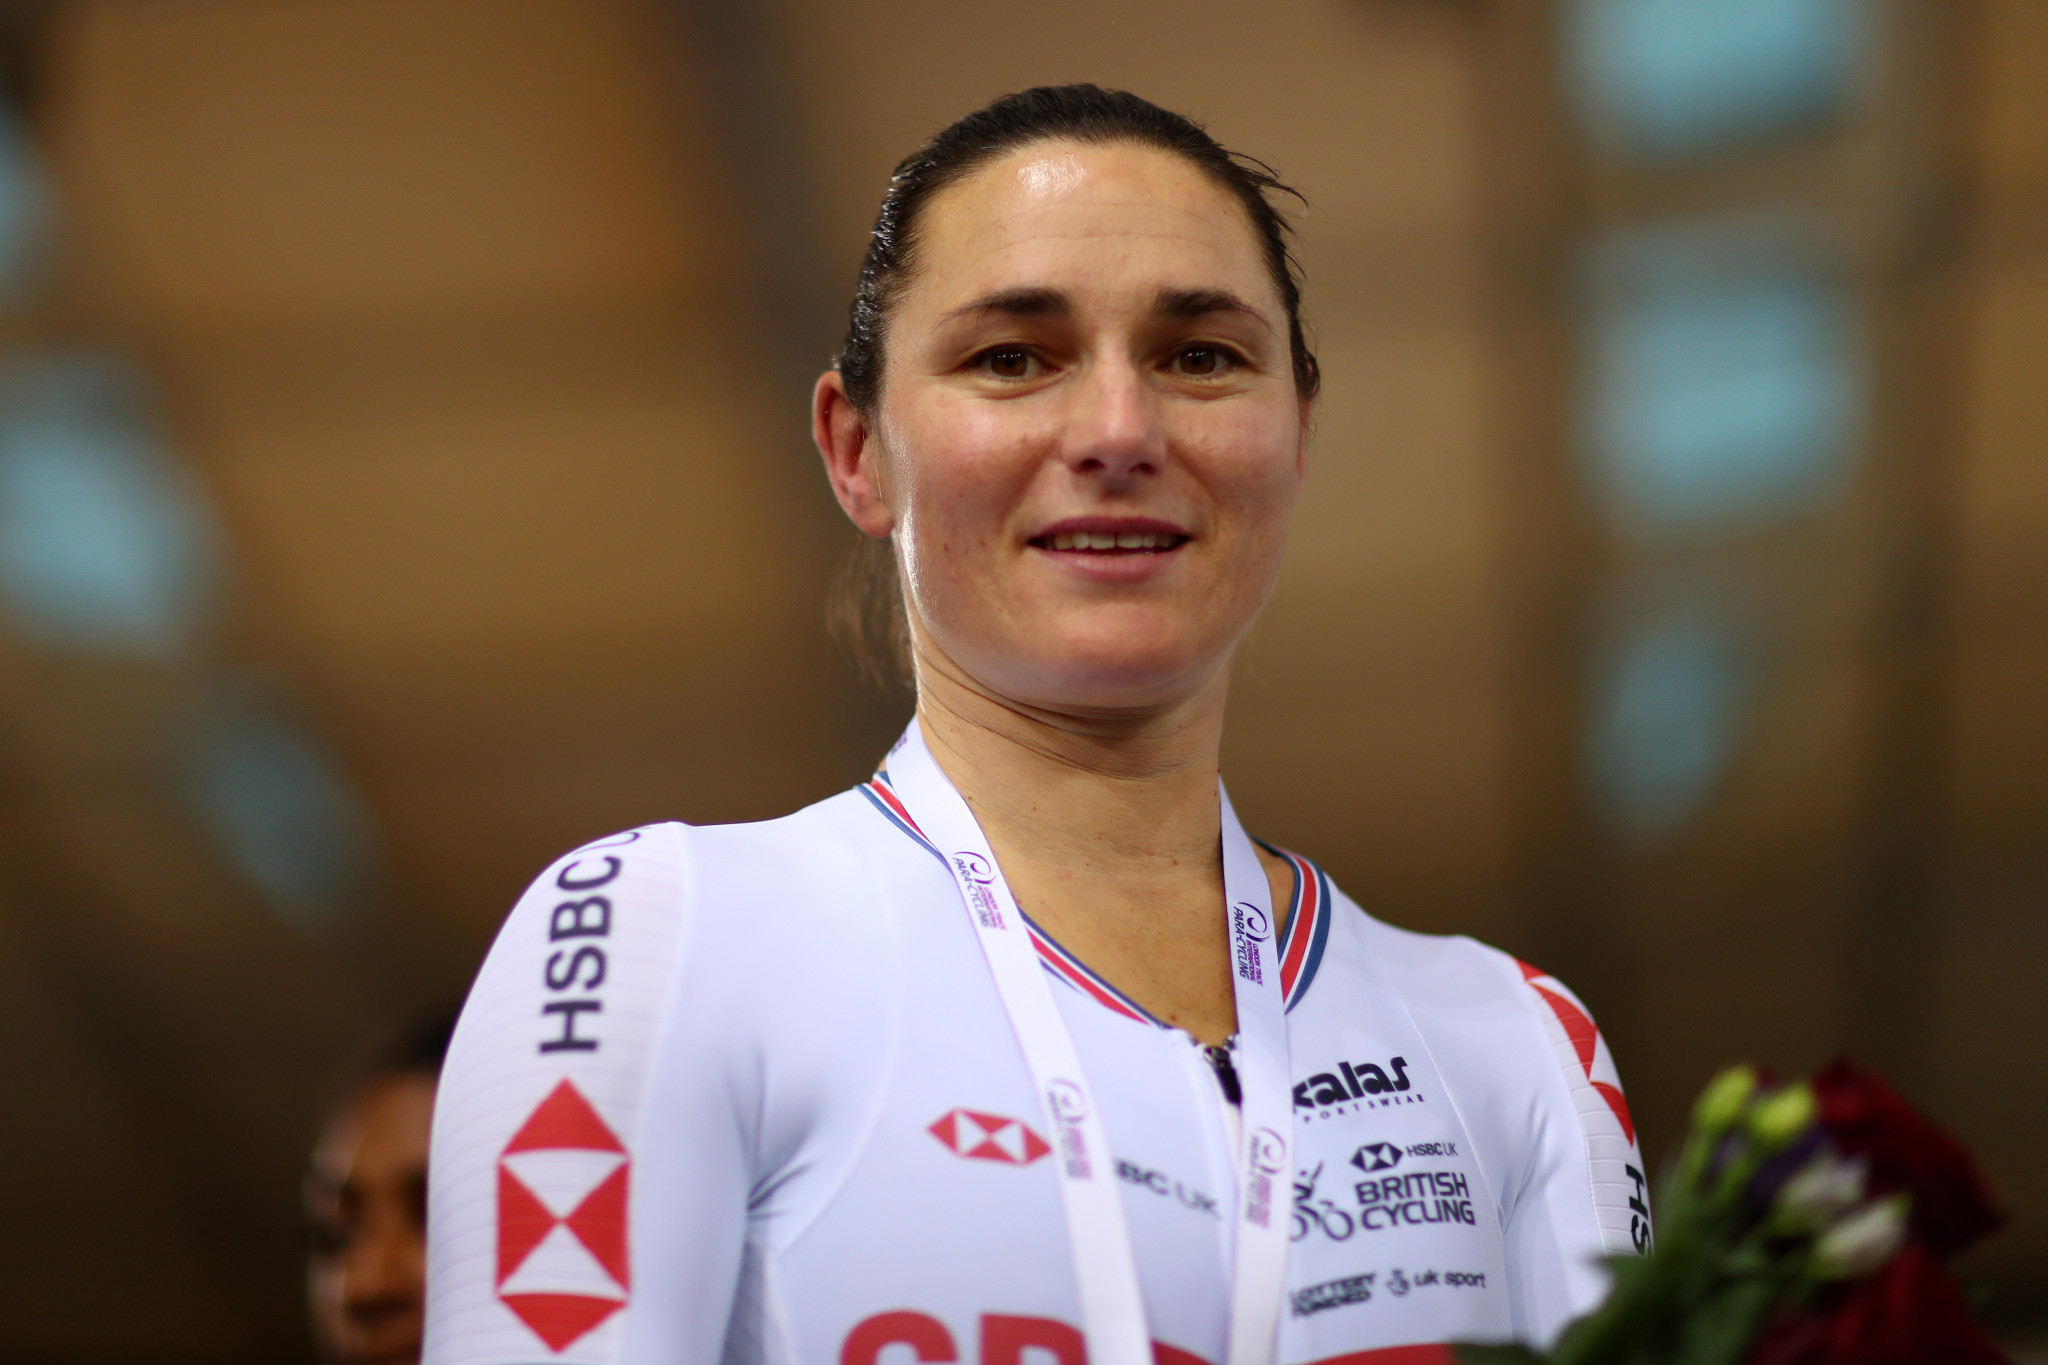 Dame Sarah Storey won three golds and now boasts 60 World Championship medals ©Getty Images